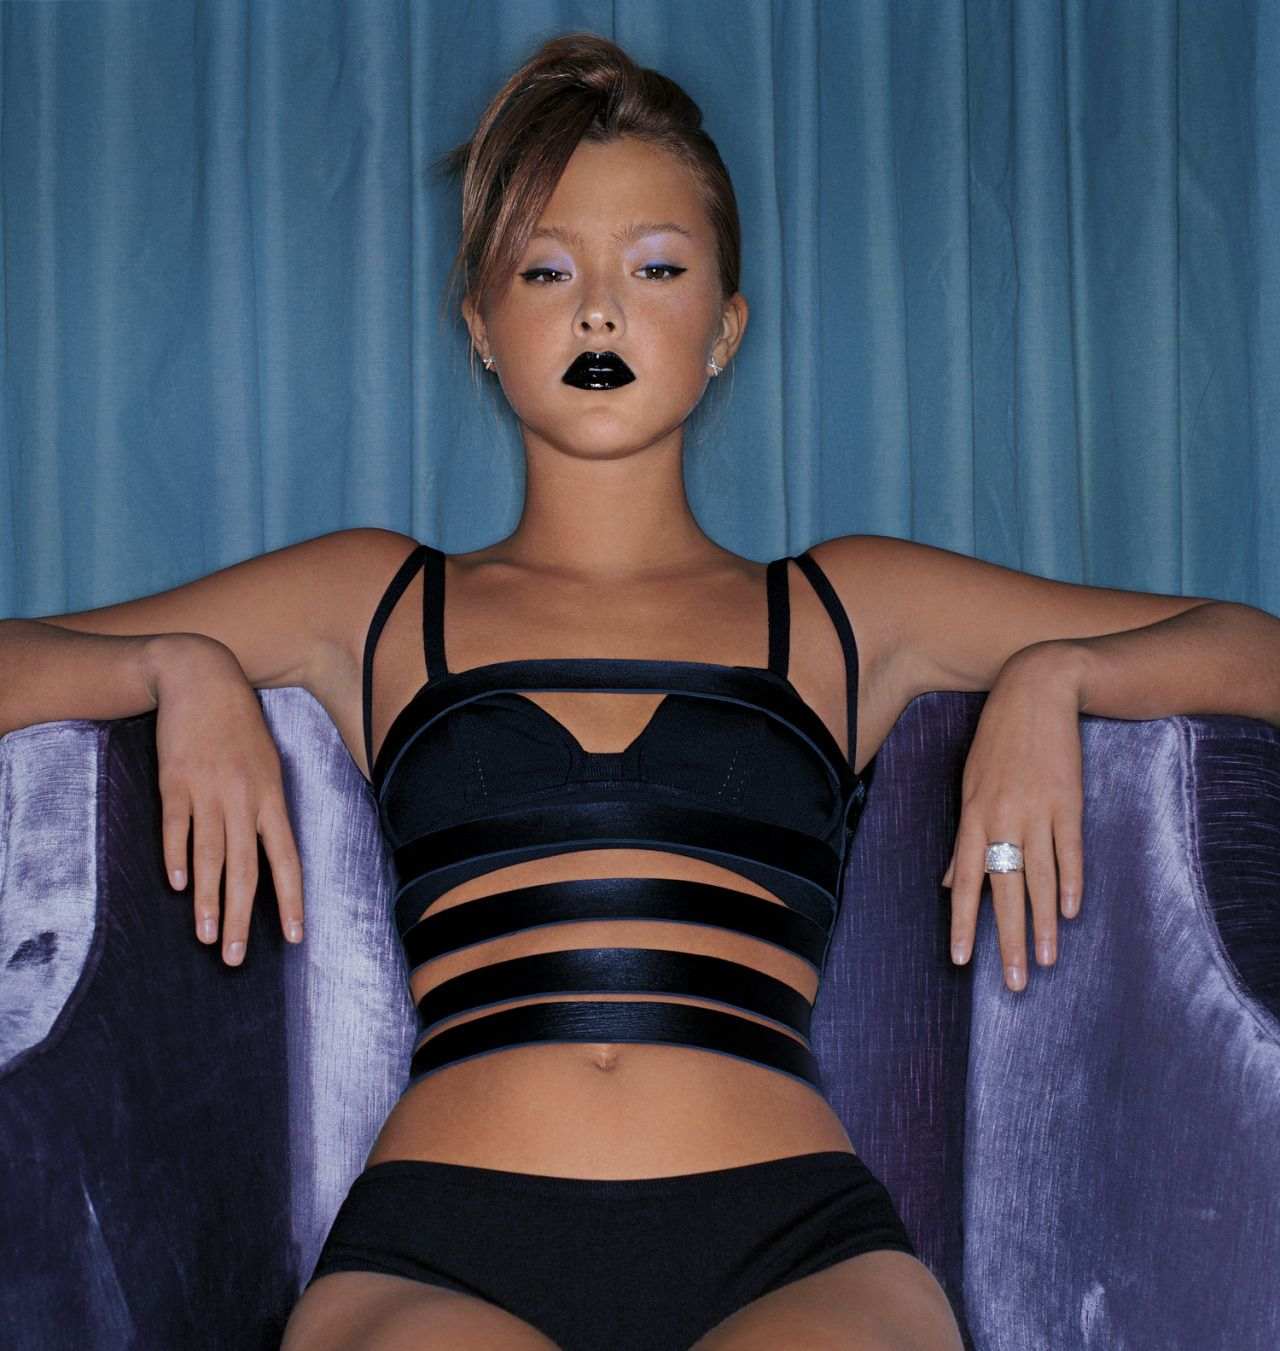 """Suit 212″ Devon Aoki photographed by Patrick Ibanez"